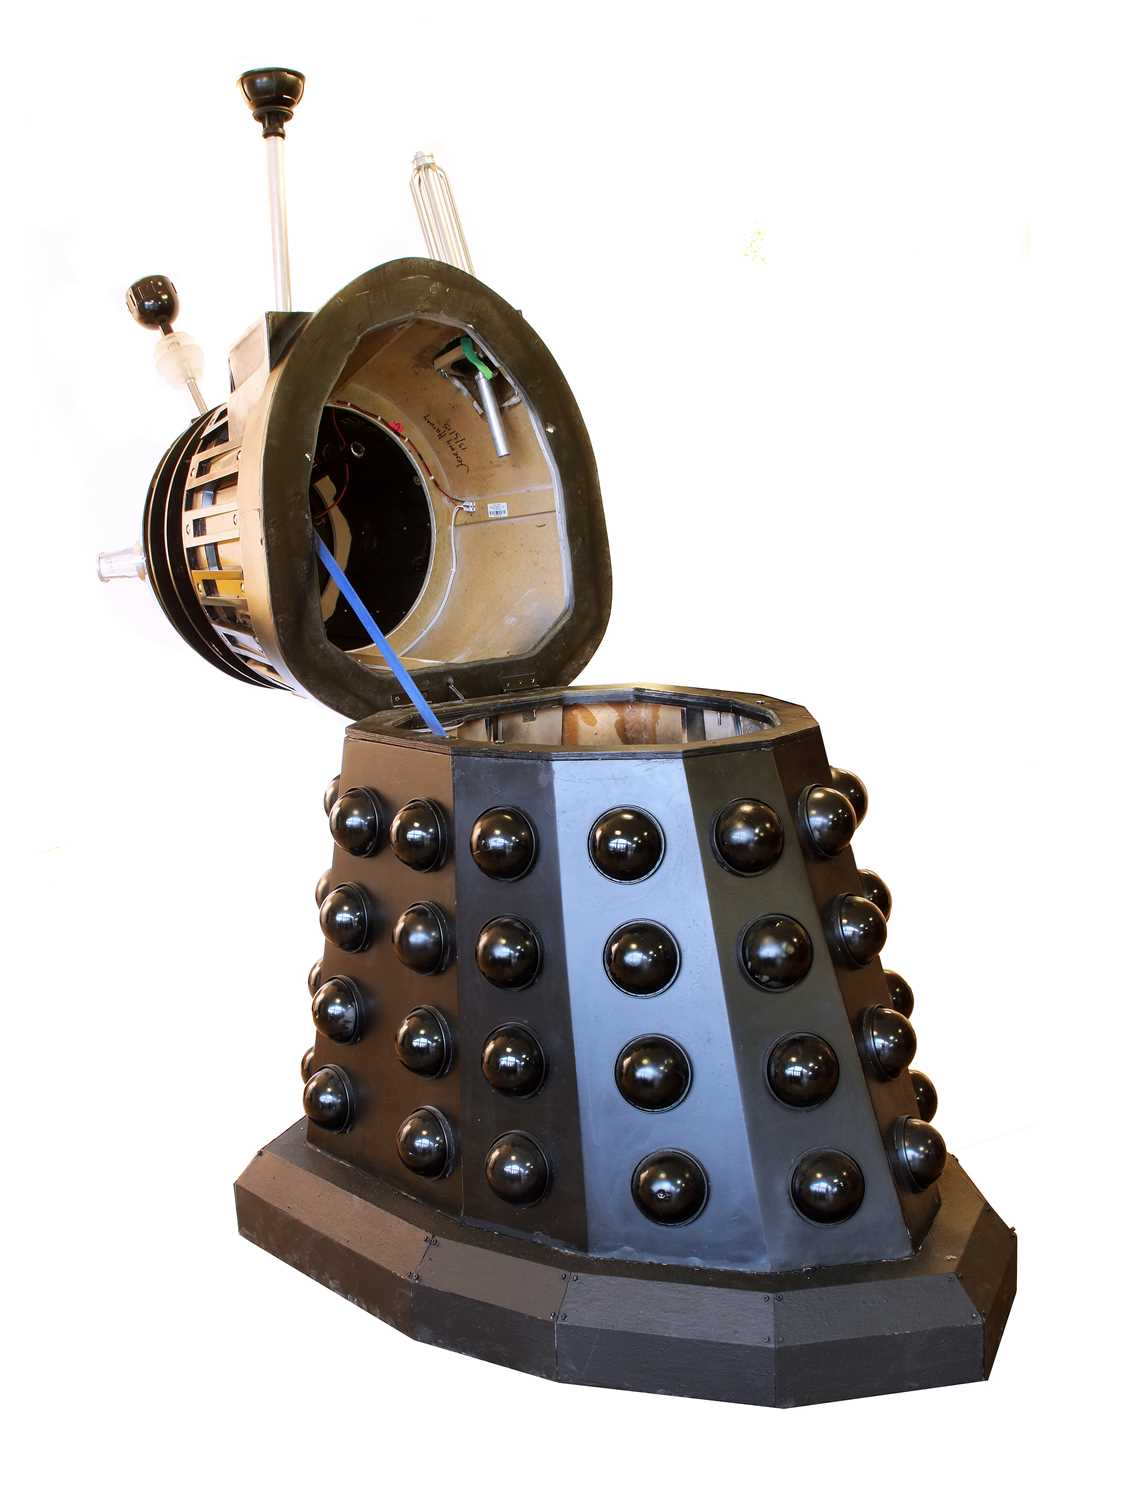 DOCTOR WHO: AN ON-SCREEN-USED DALEK SEC, - Image 2 of 5